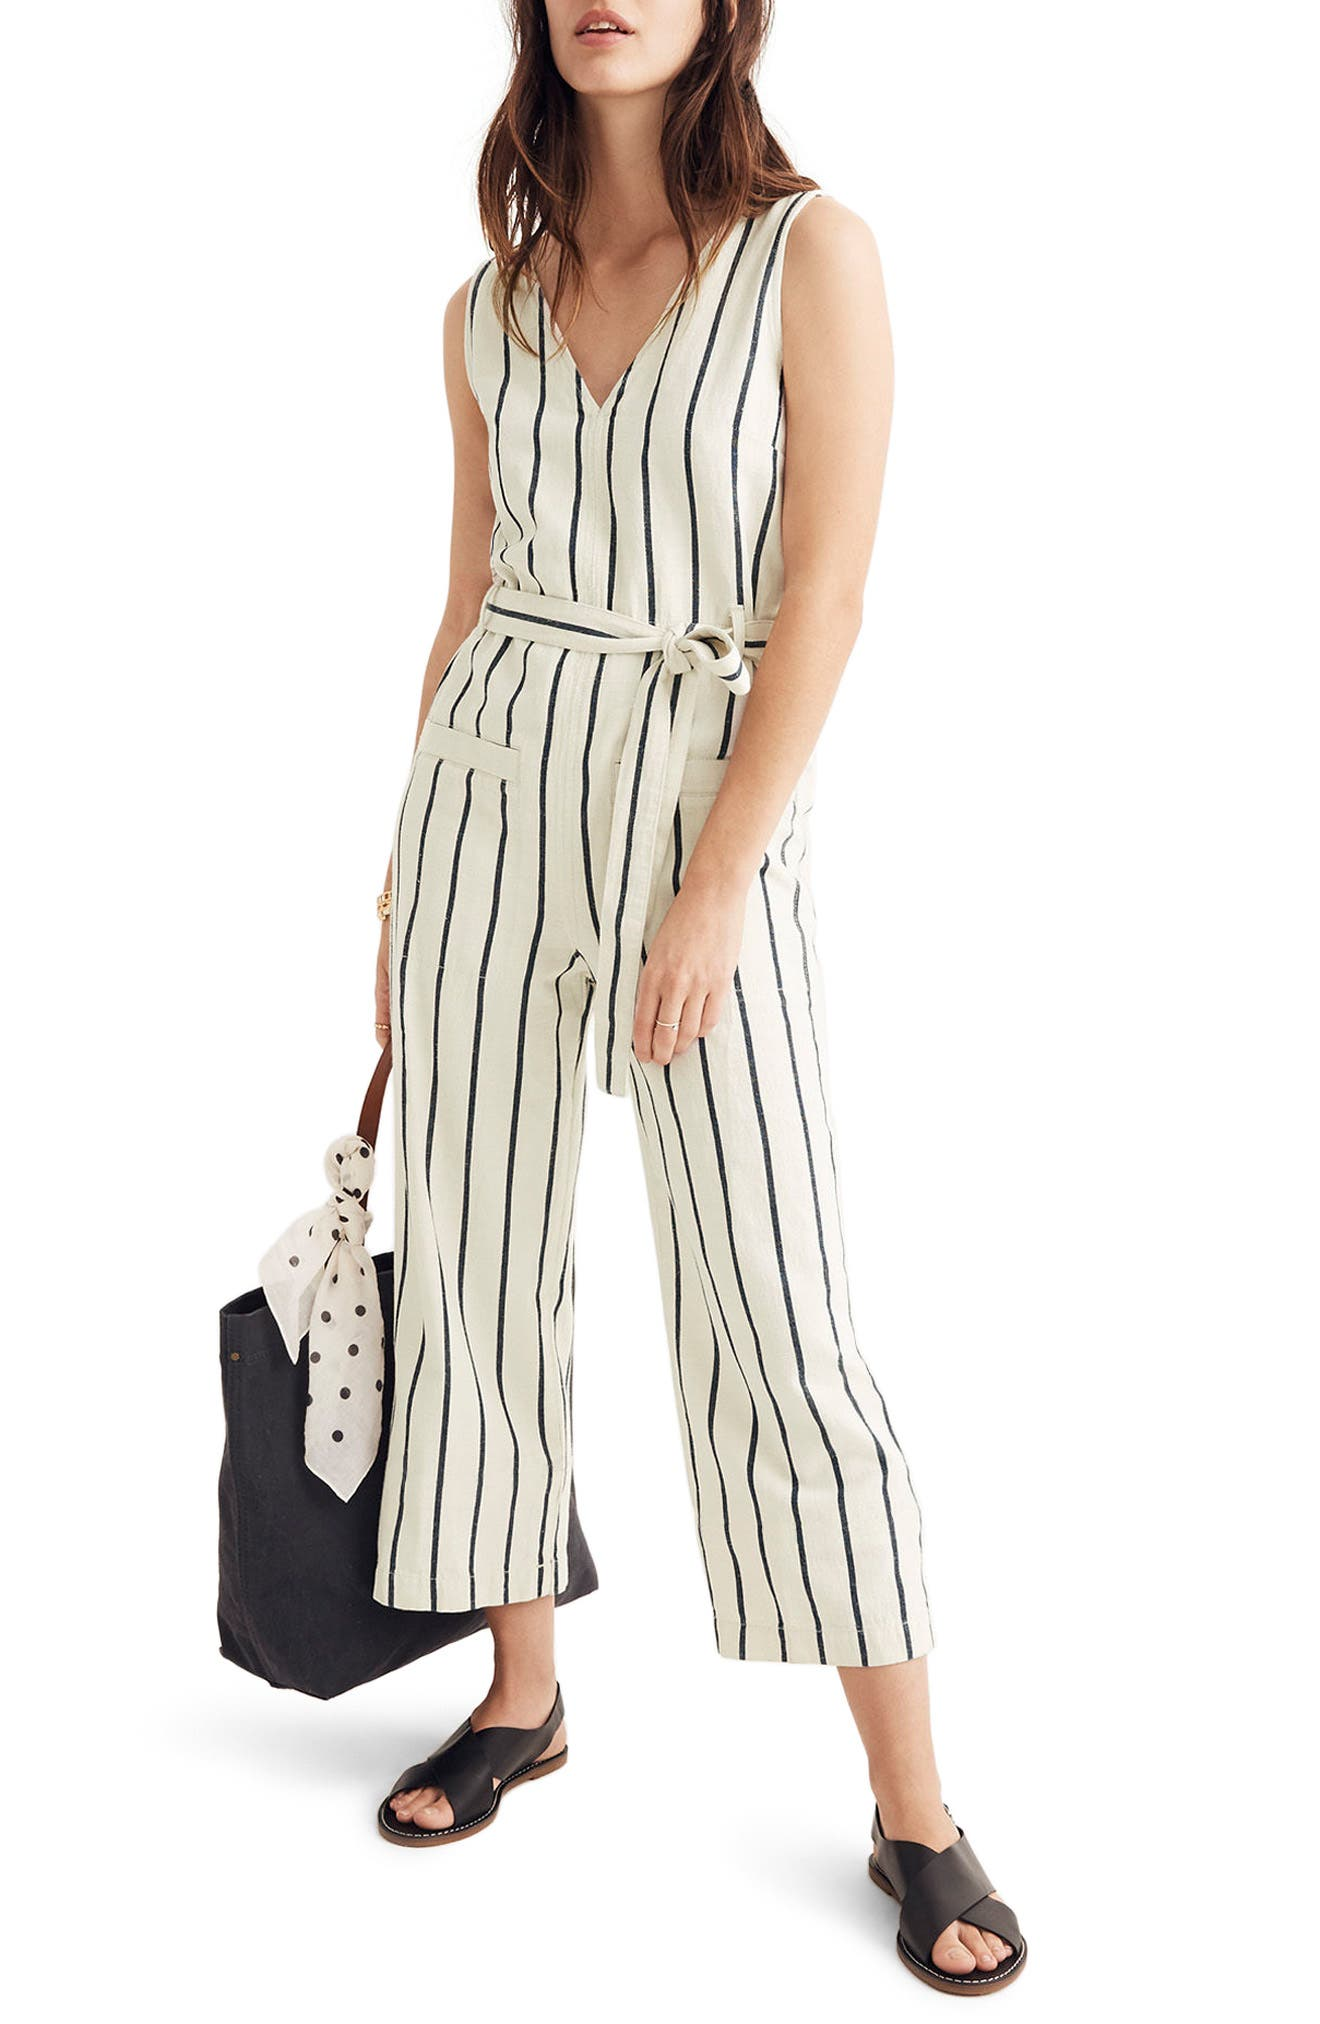 45ed7ba3bad6 Women s Rompers   Jumpsuits Fashion Trends  Clothing